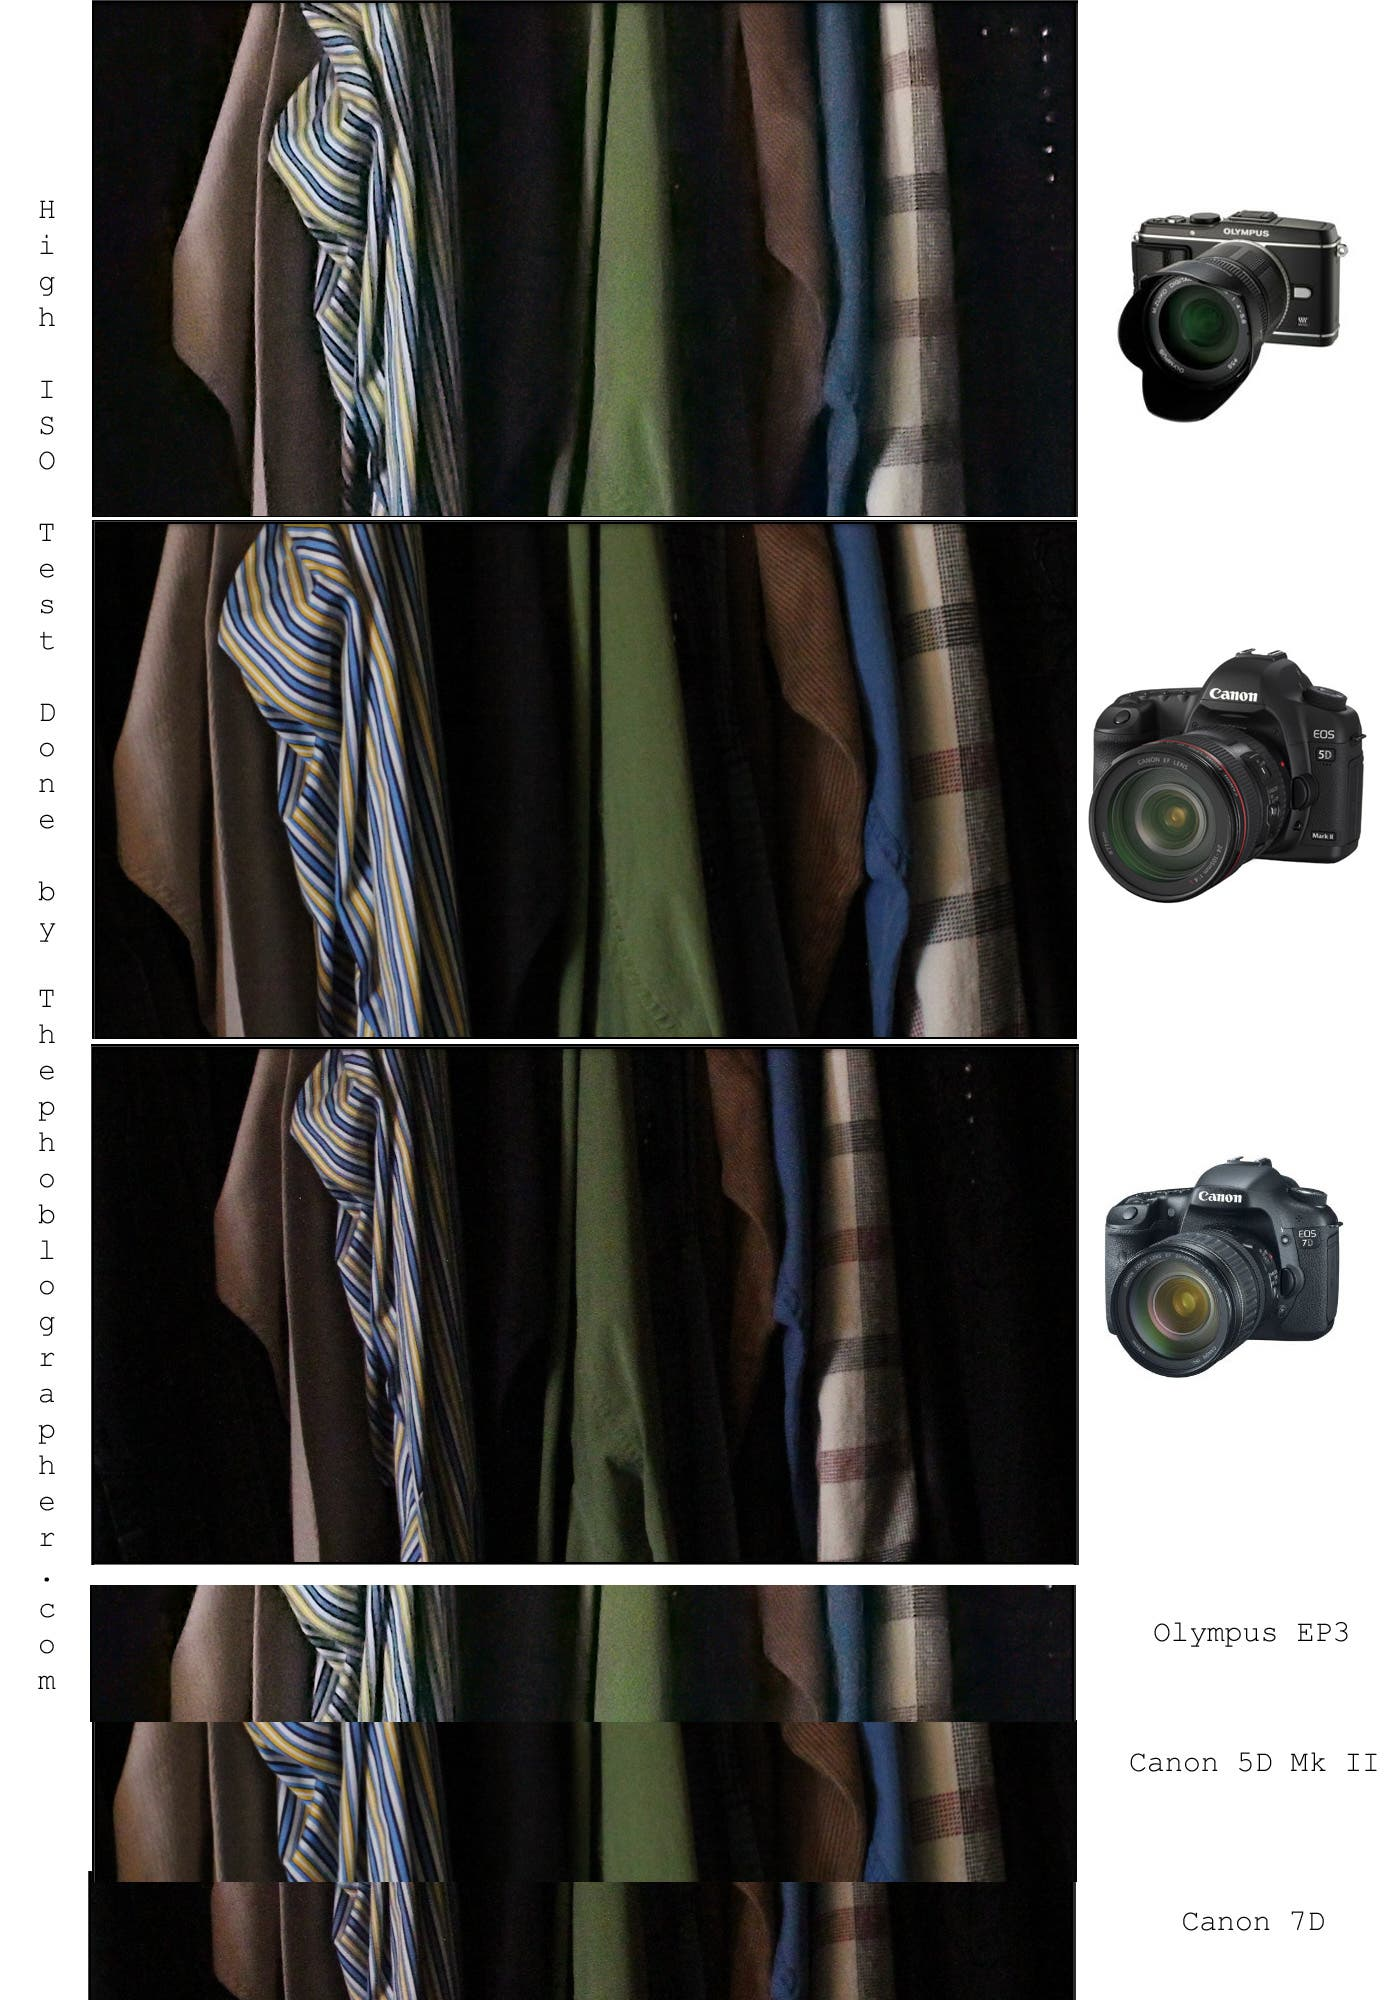 High ISO Test: Olympus EP3 vs Canon 5D Mk II vs 7D